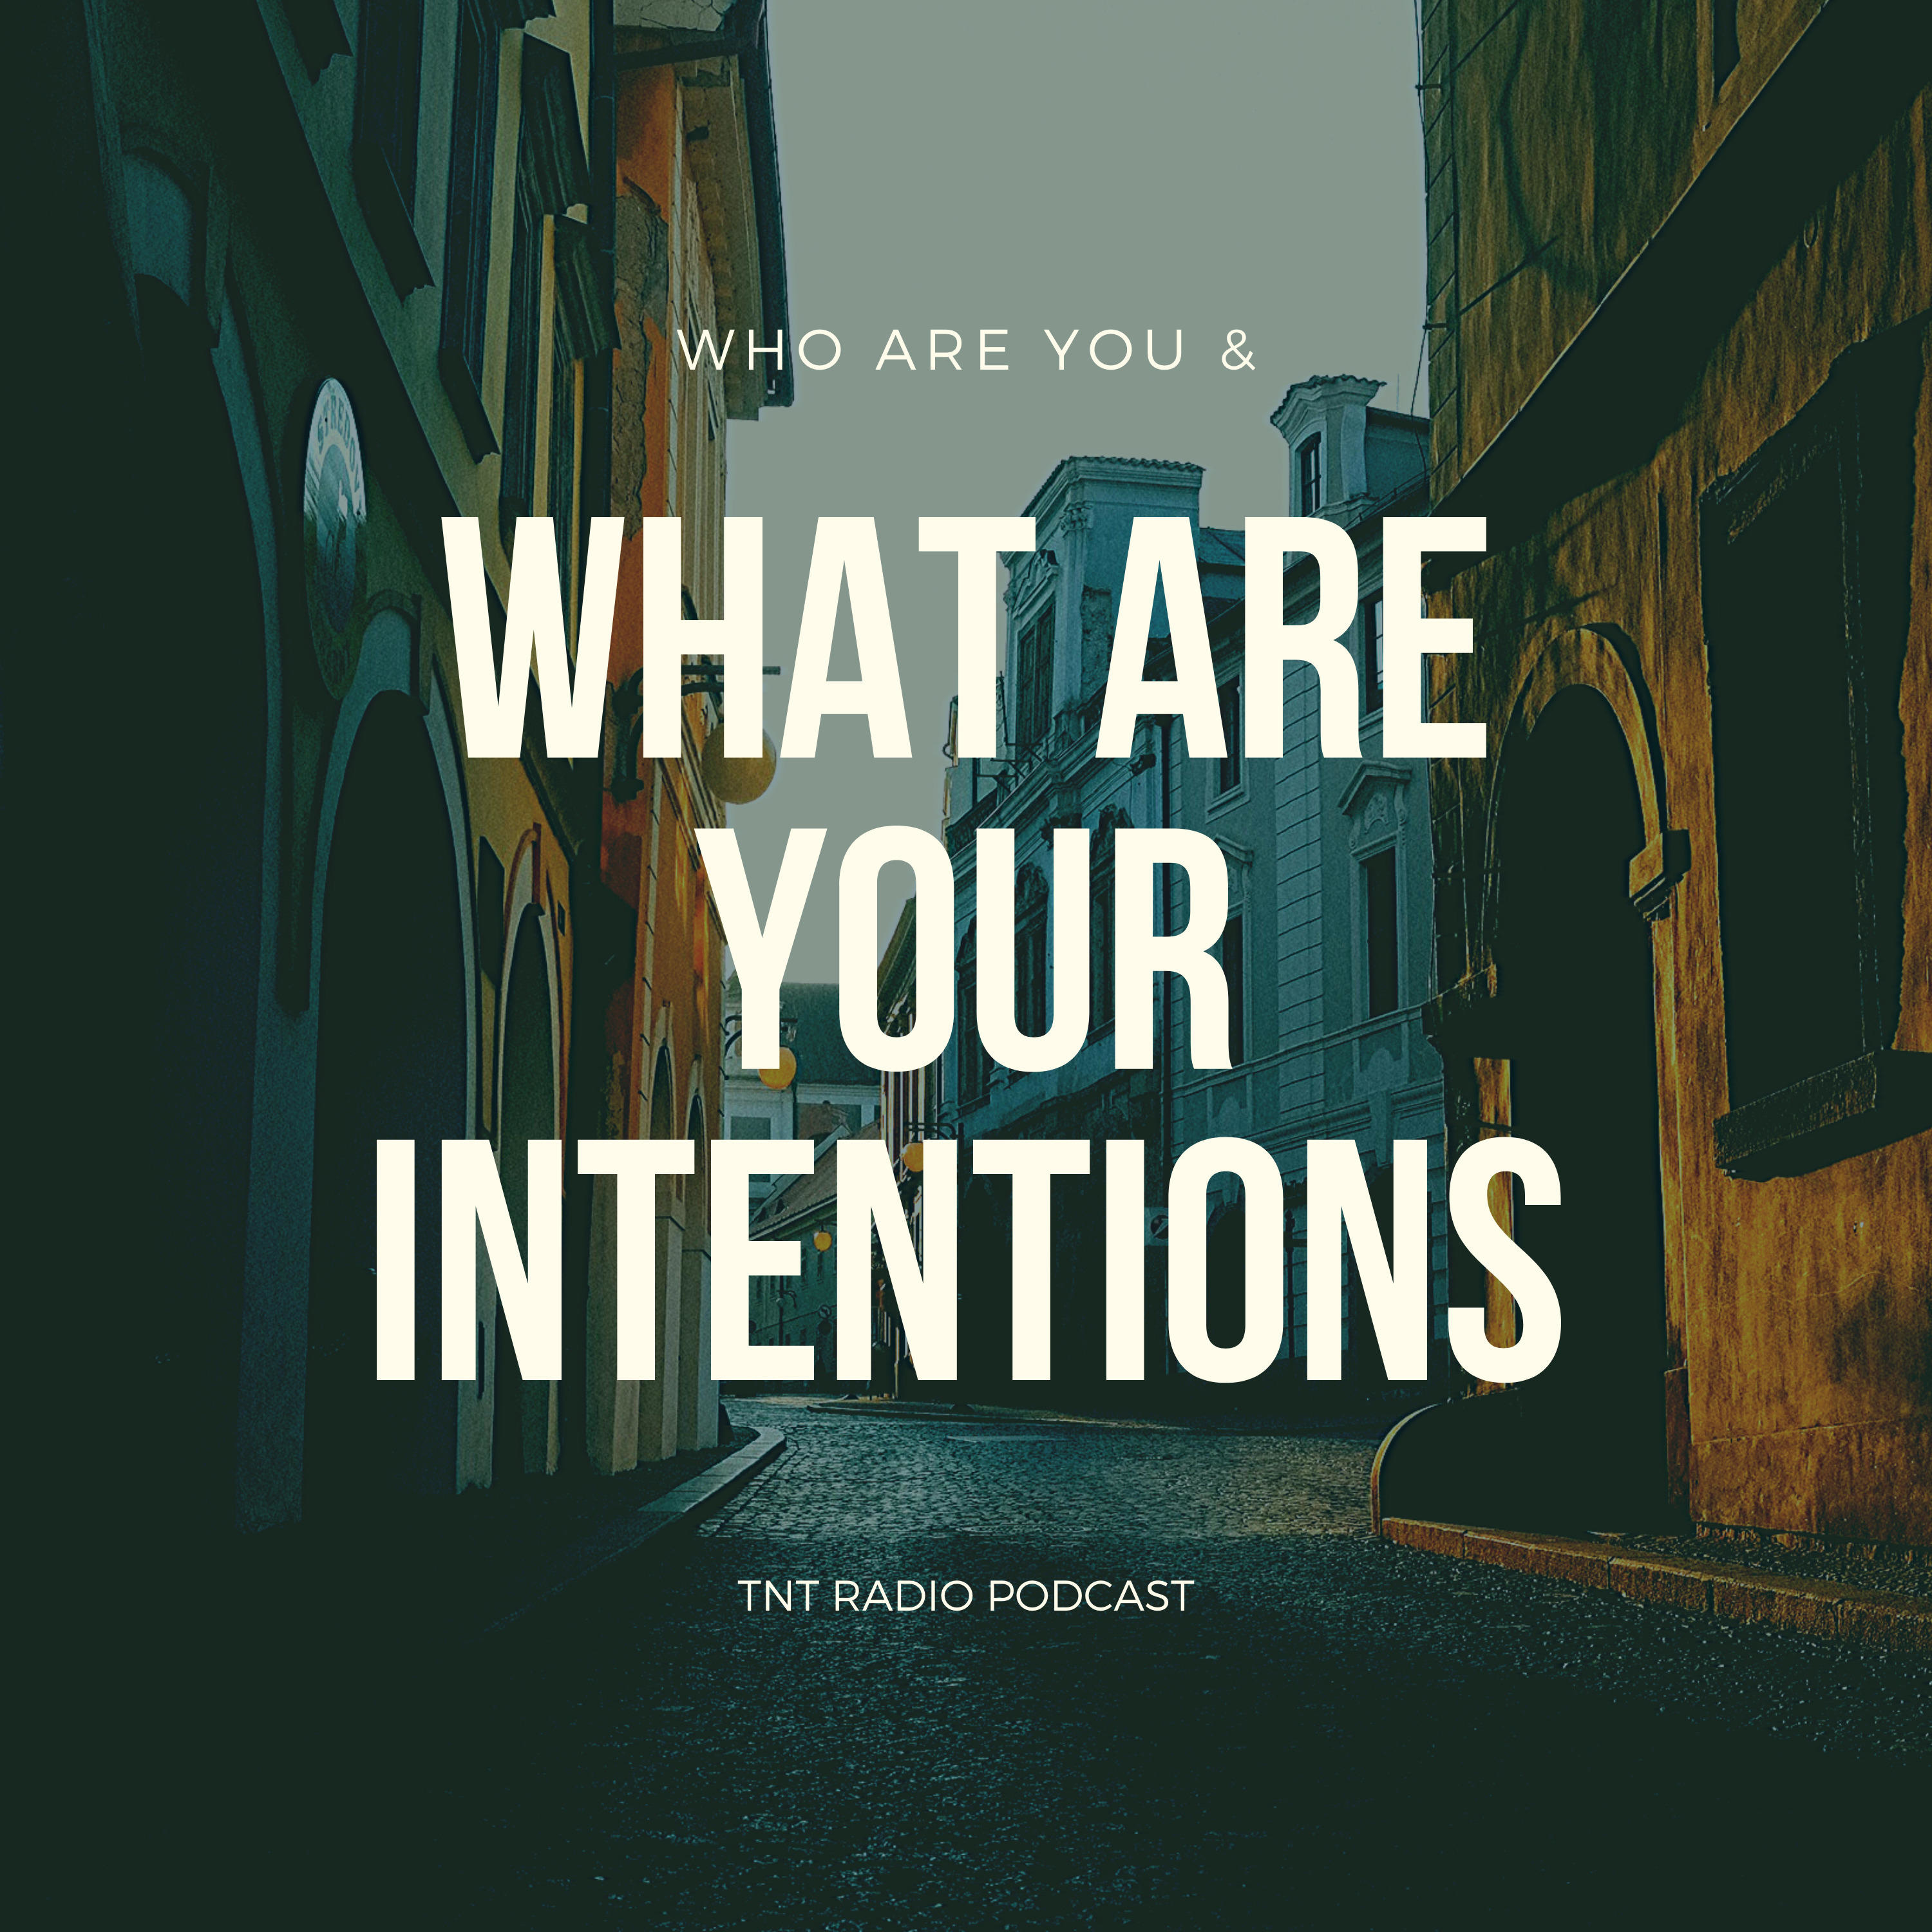 Who Are You & What Are Your Intentions